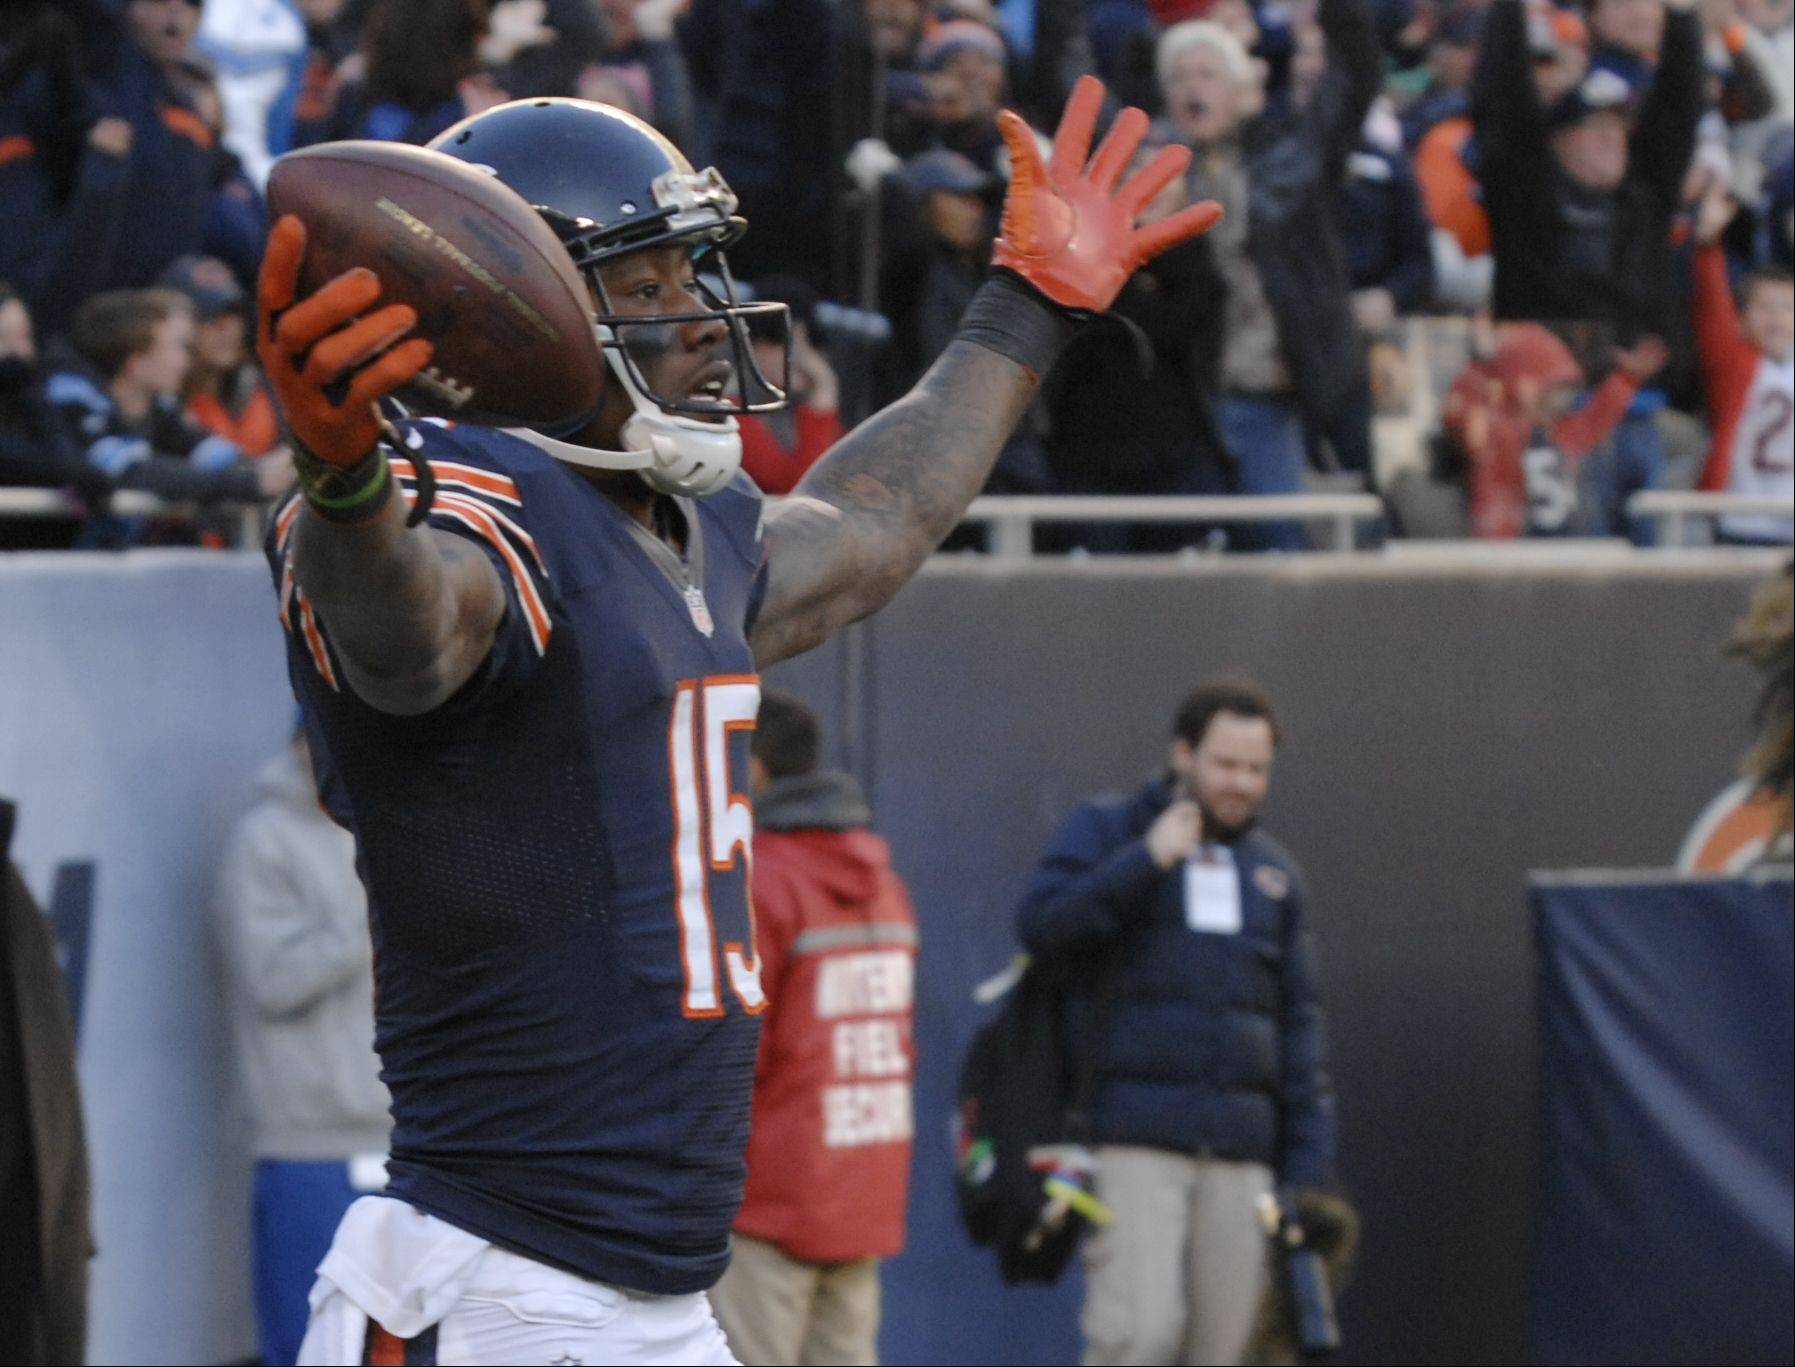 Chicago Bears wide receiver Brandon Marshall celebrates his 4th quarter touchdown during the Bears 21-19 loss to the Detroit Lions.